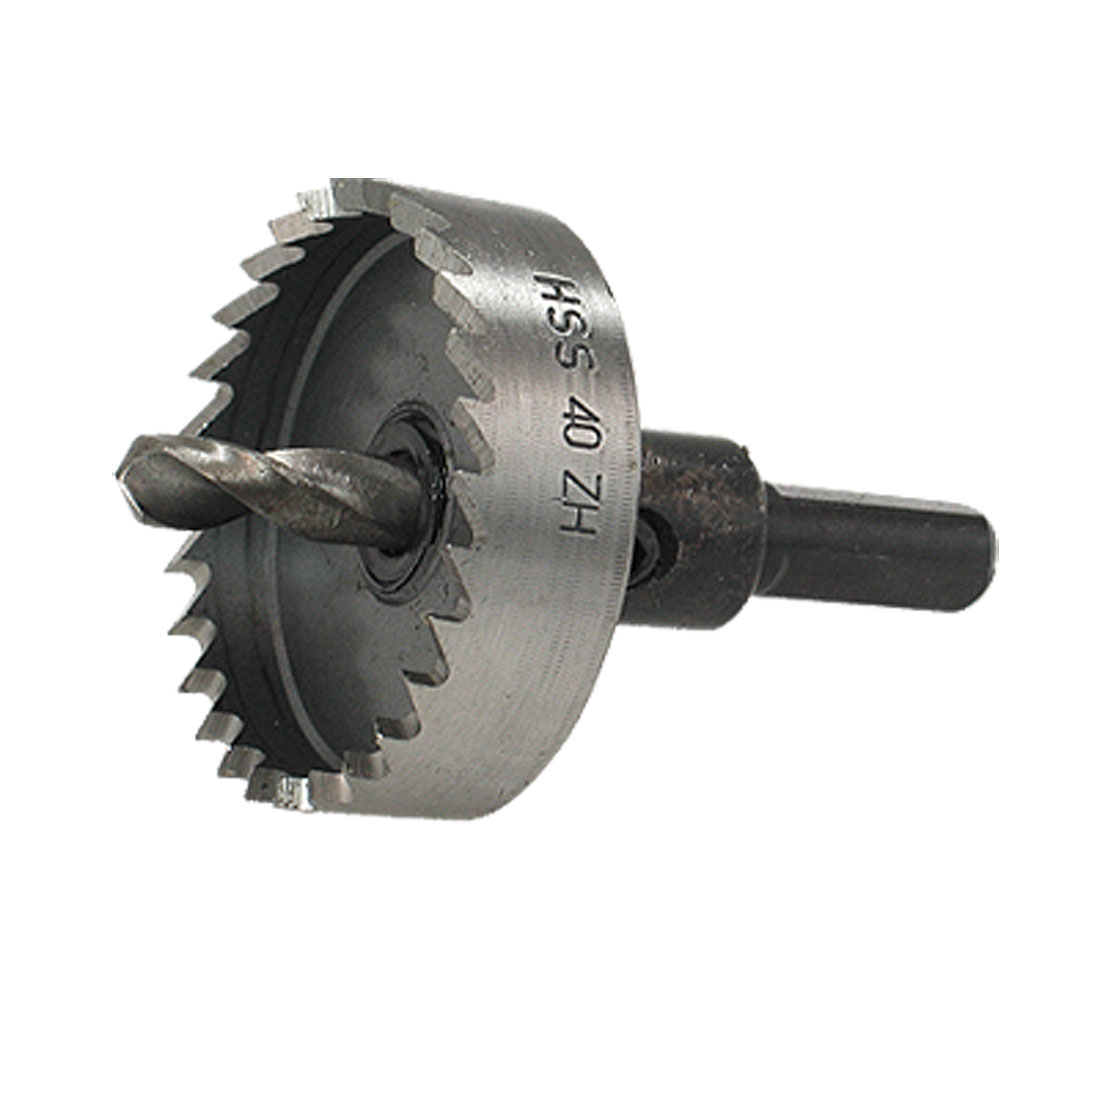 40mm Metal HSS Hole Saw Cutter Drill Bit Hex Wrench